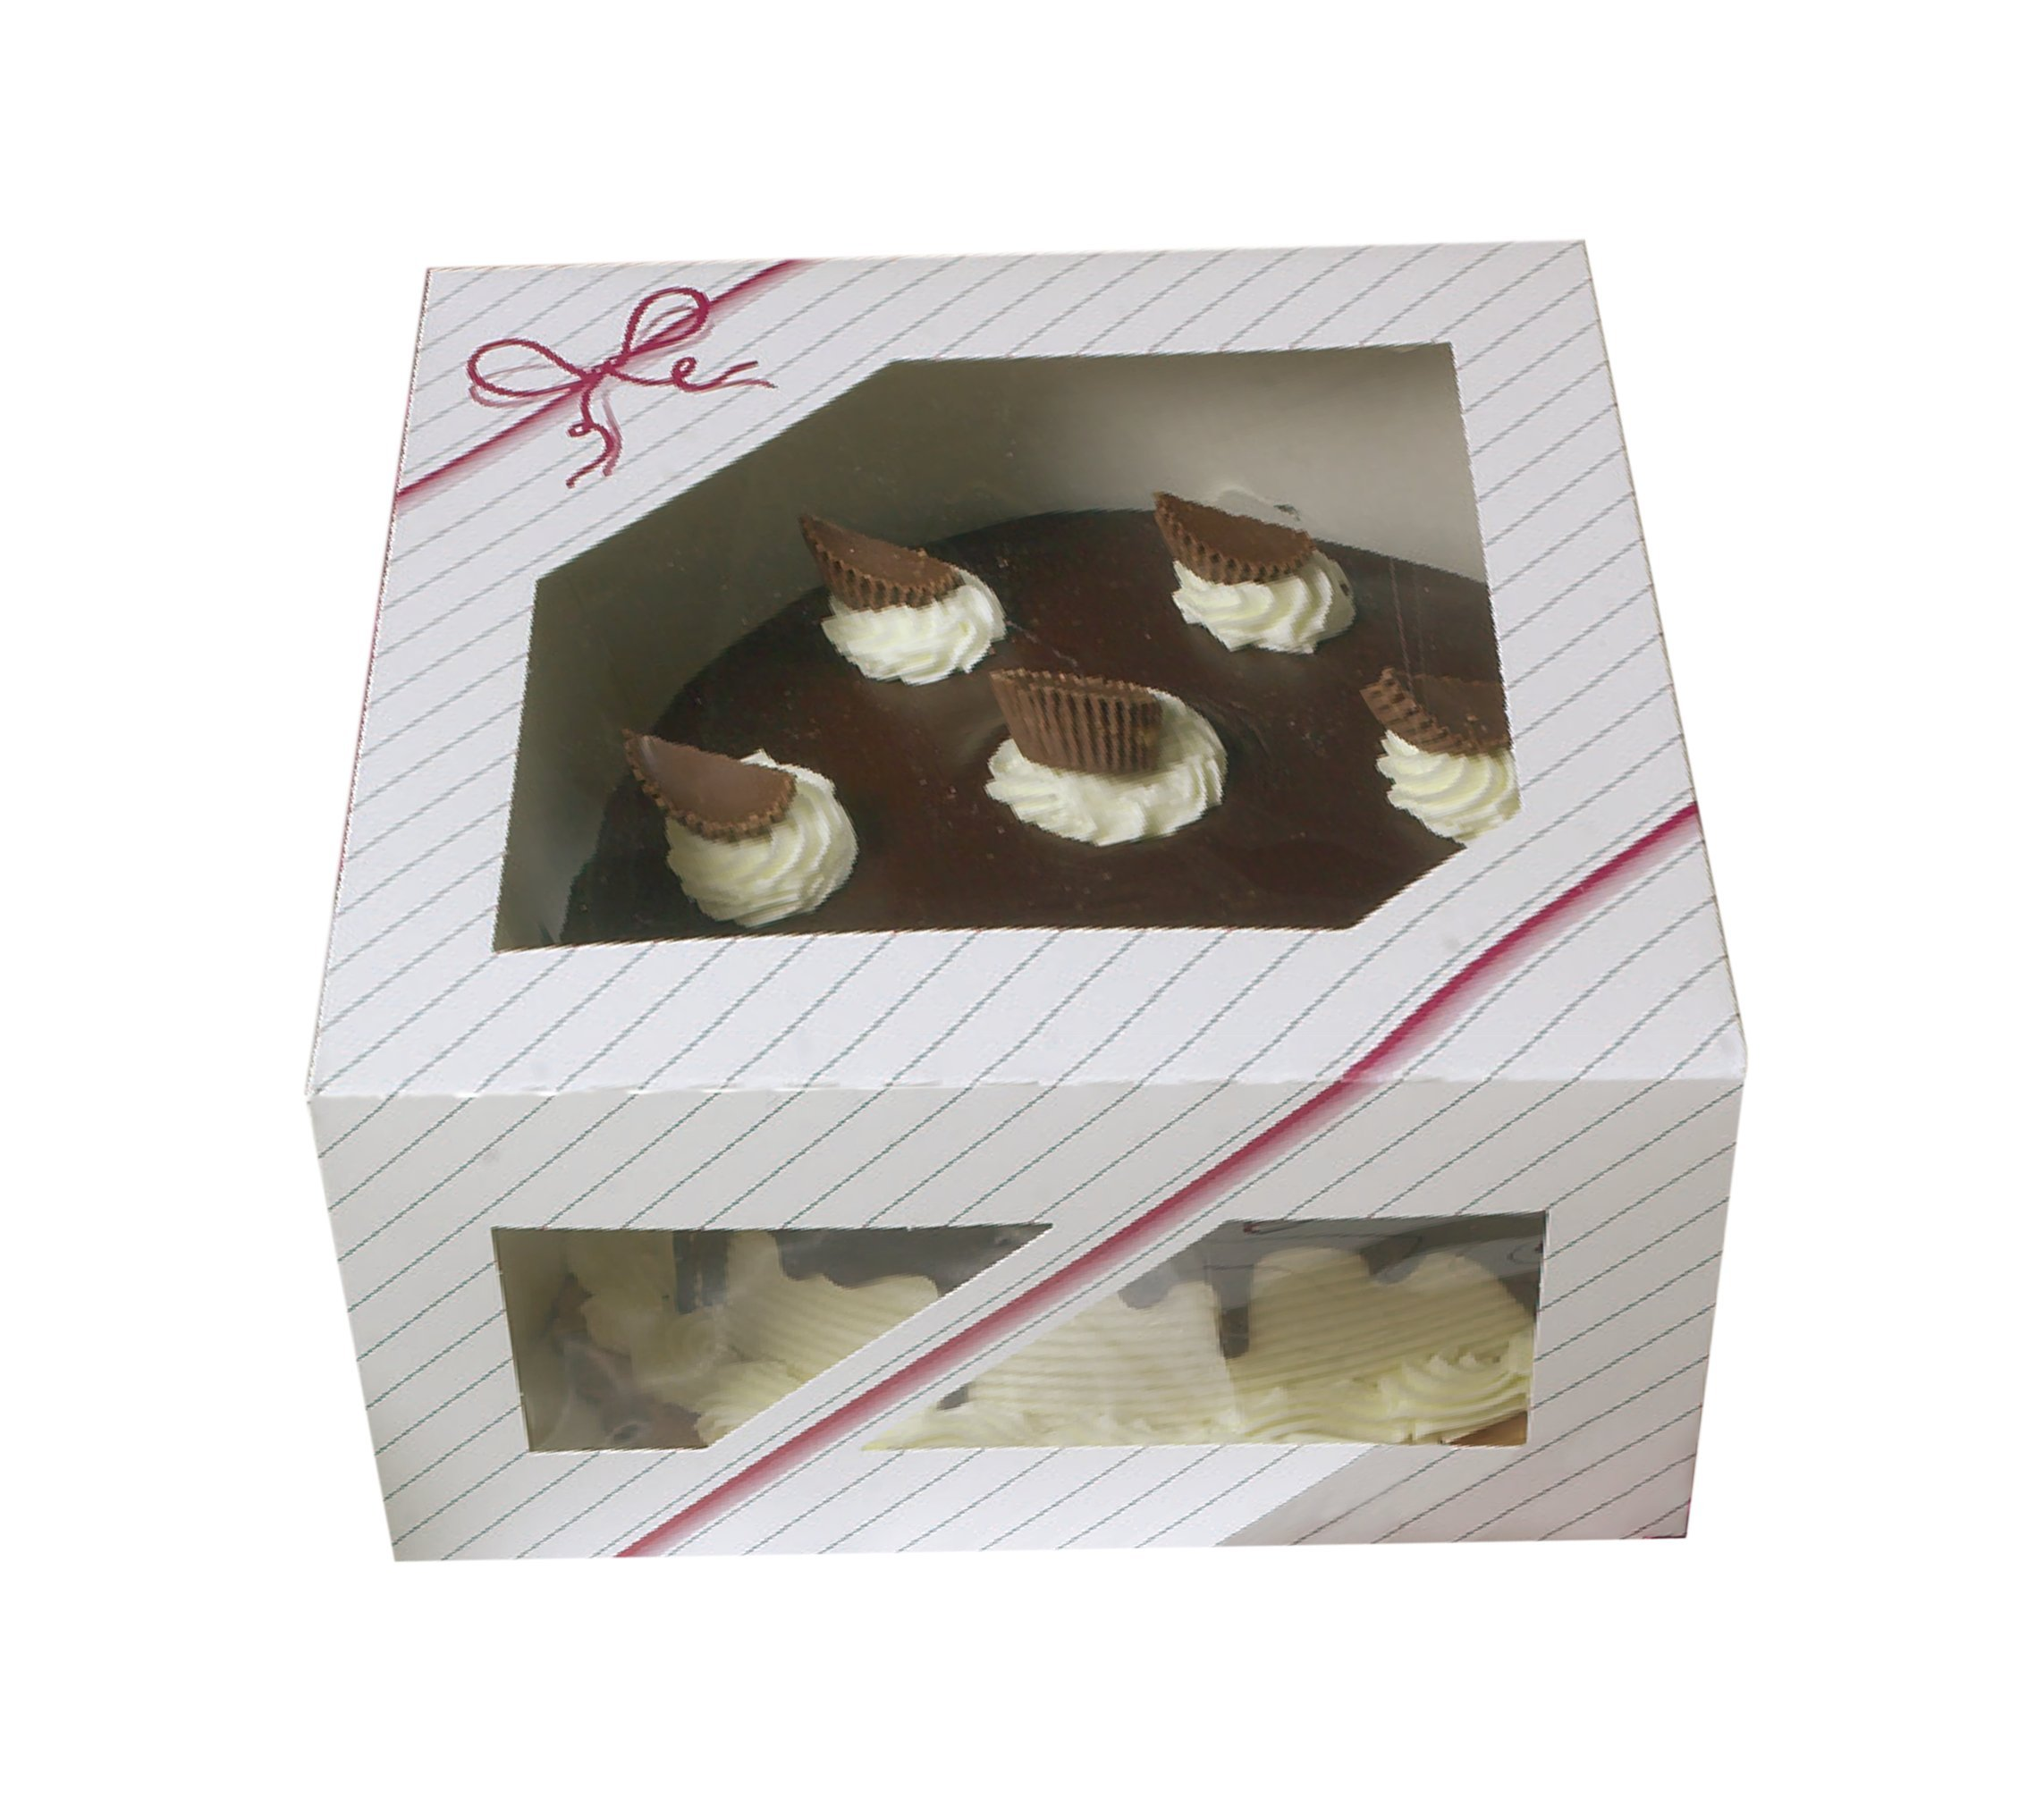 Window Cake Boxes 10 x 10 x 5-8 boxes - Paperboard Auto Popup for round Cake and pie Bakery Boxes - pink striped and string Graphic designed